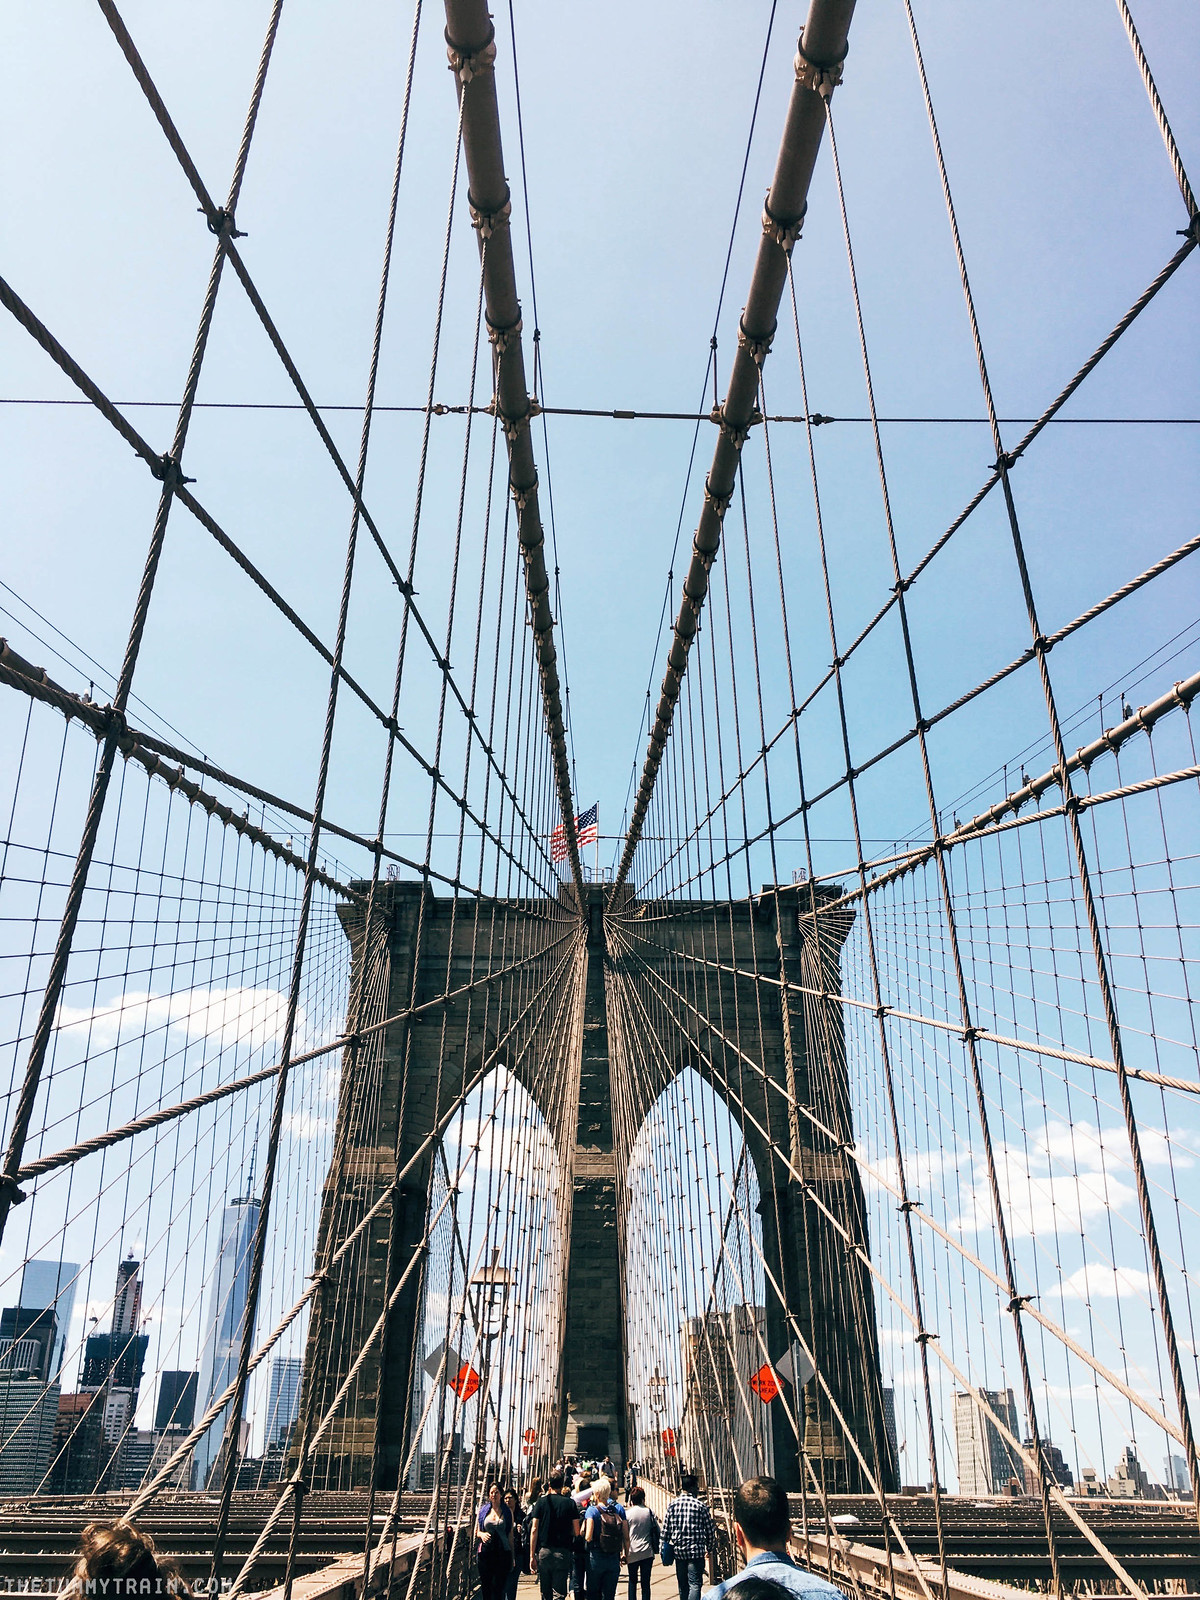 30156363513 b83c6fd2a3 h - USA 2016 Travel Diary: My adventures in crossing the Brooklyn Bridge